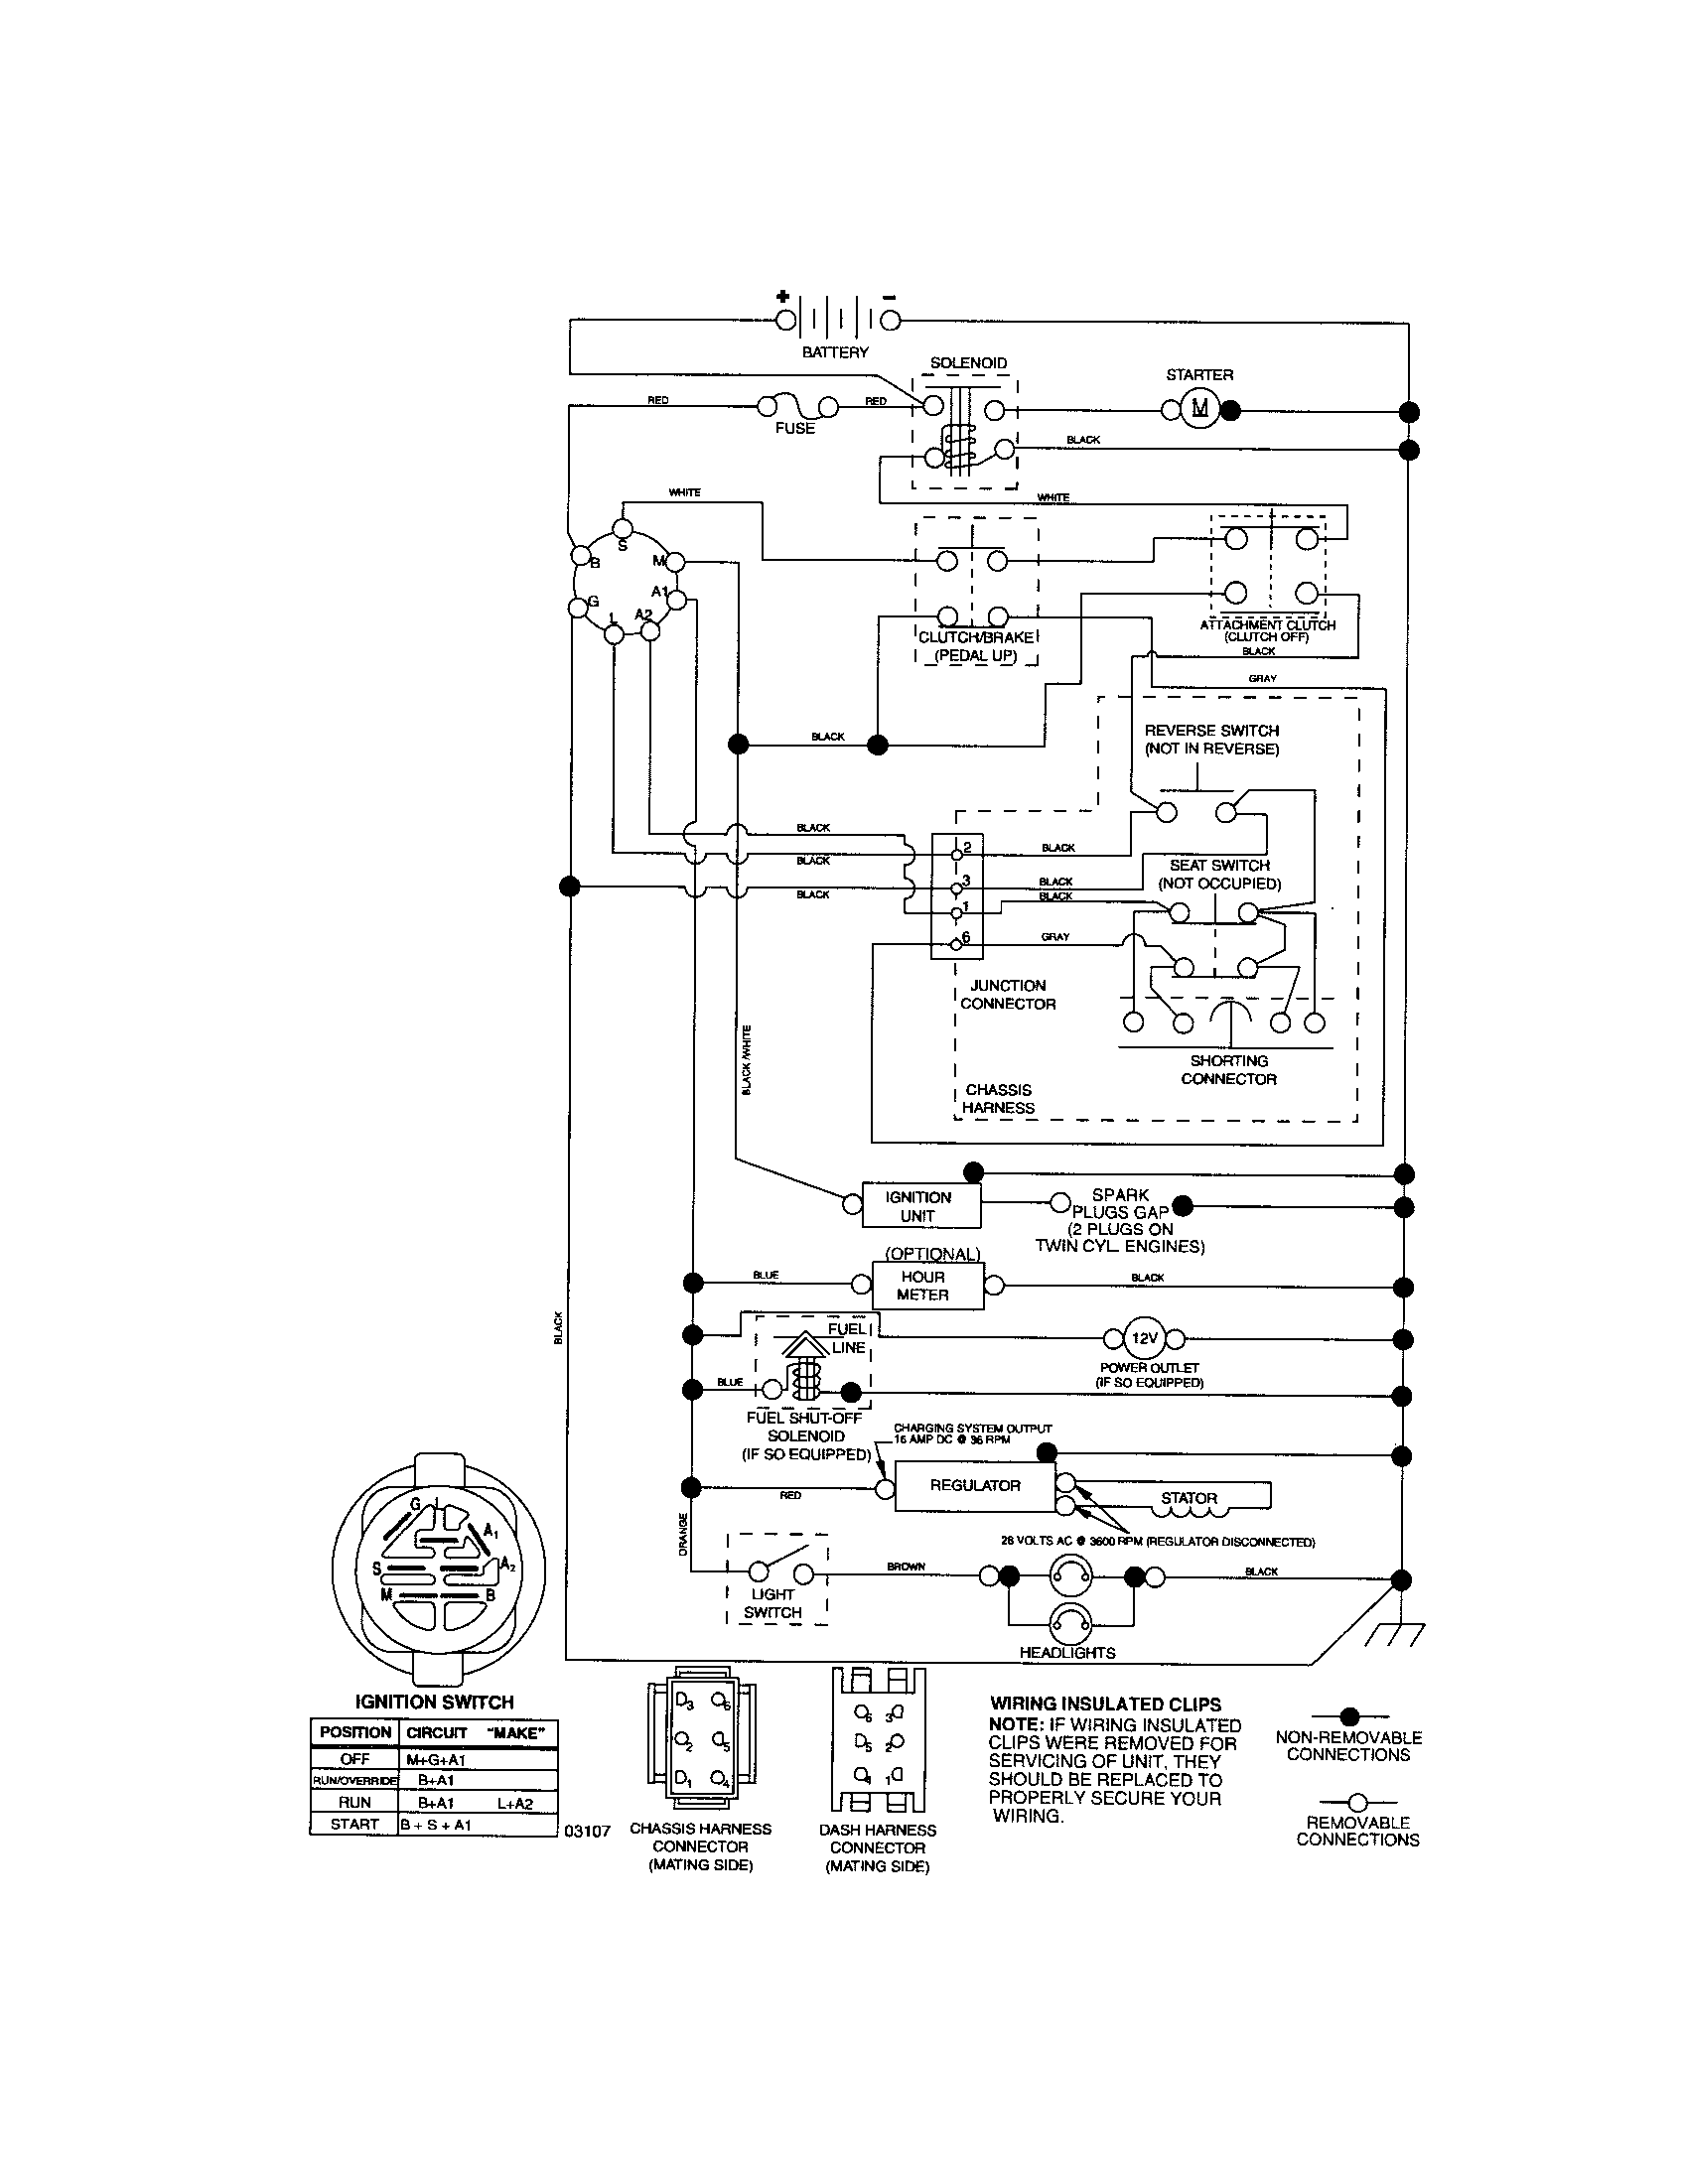 6af5f1447fd13c8443376822ddc1e105 craftsman riding mower electrical diagram wiring diagram goodman a30-15 wiring diagram at webbmarketing.co